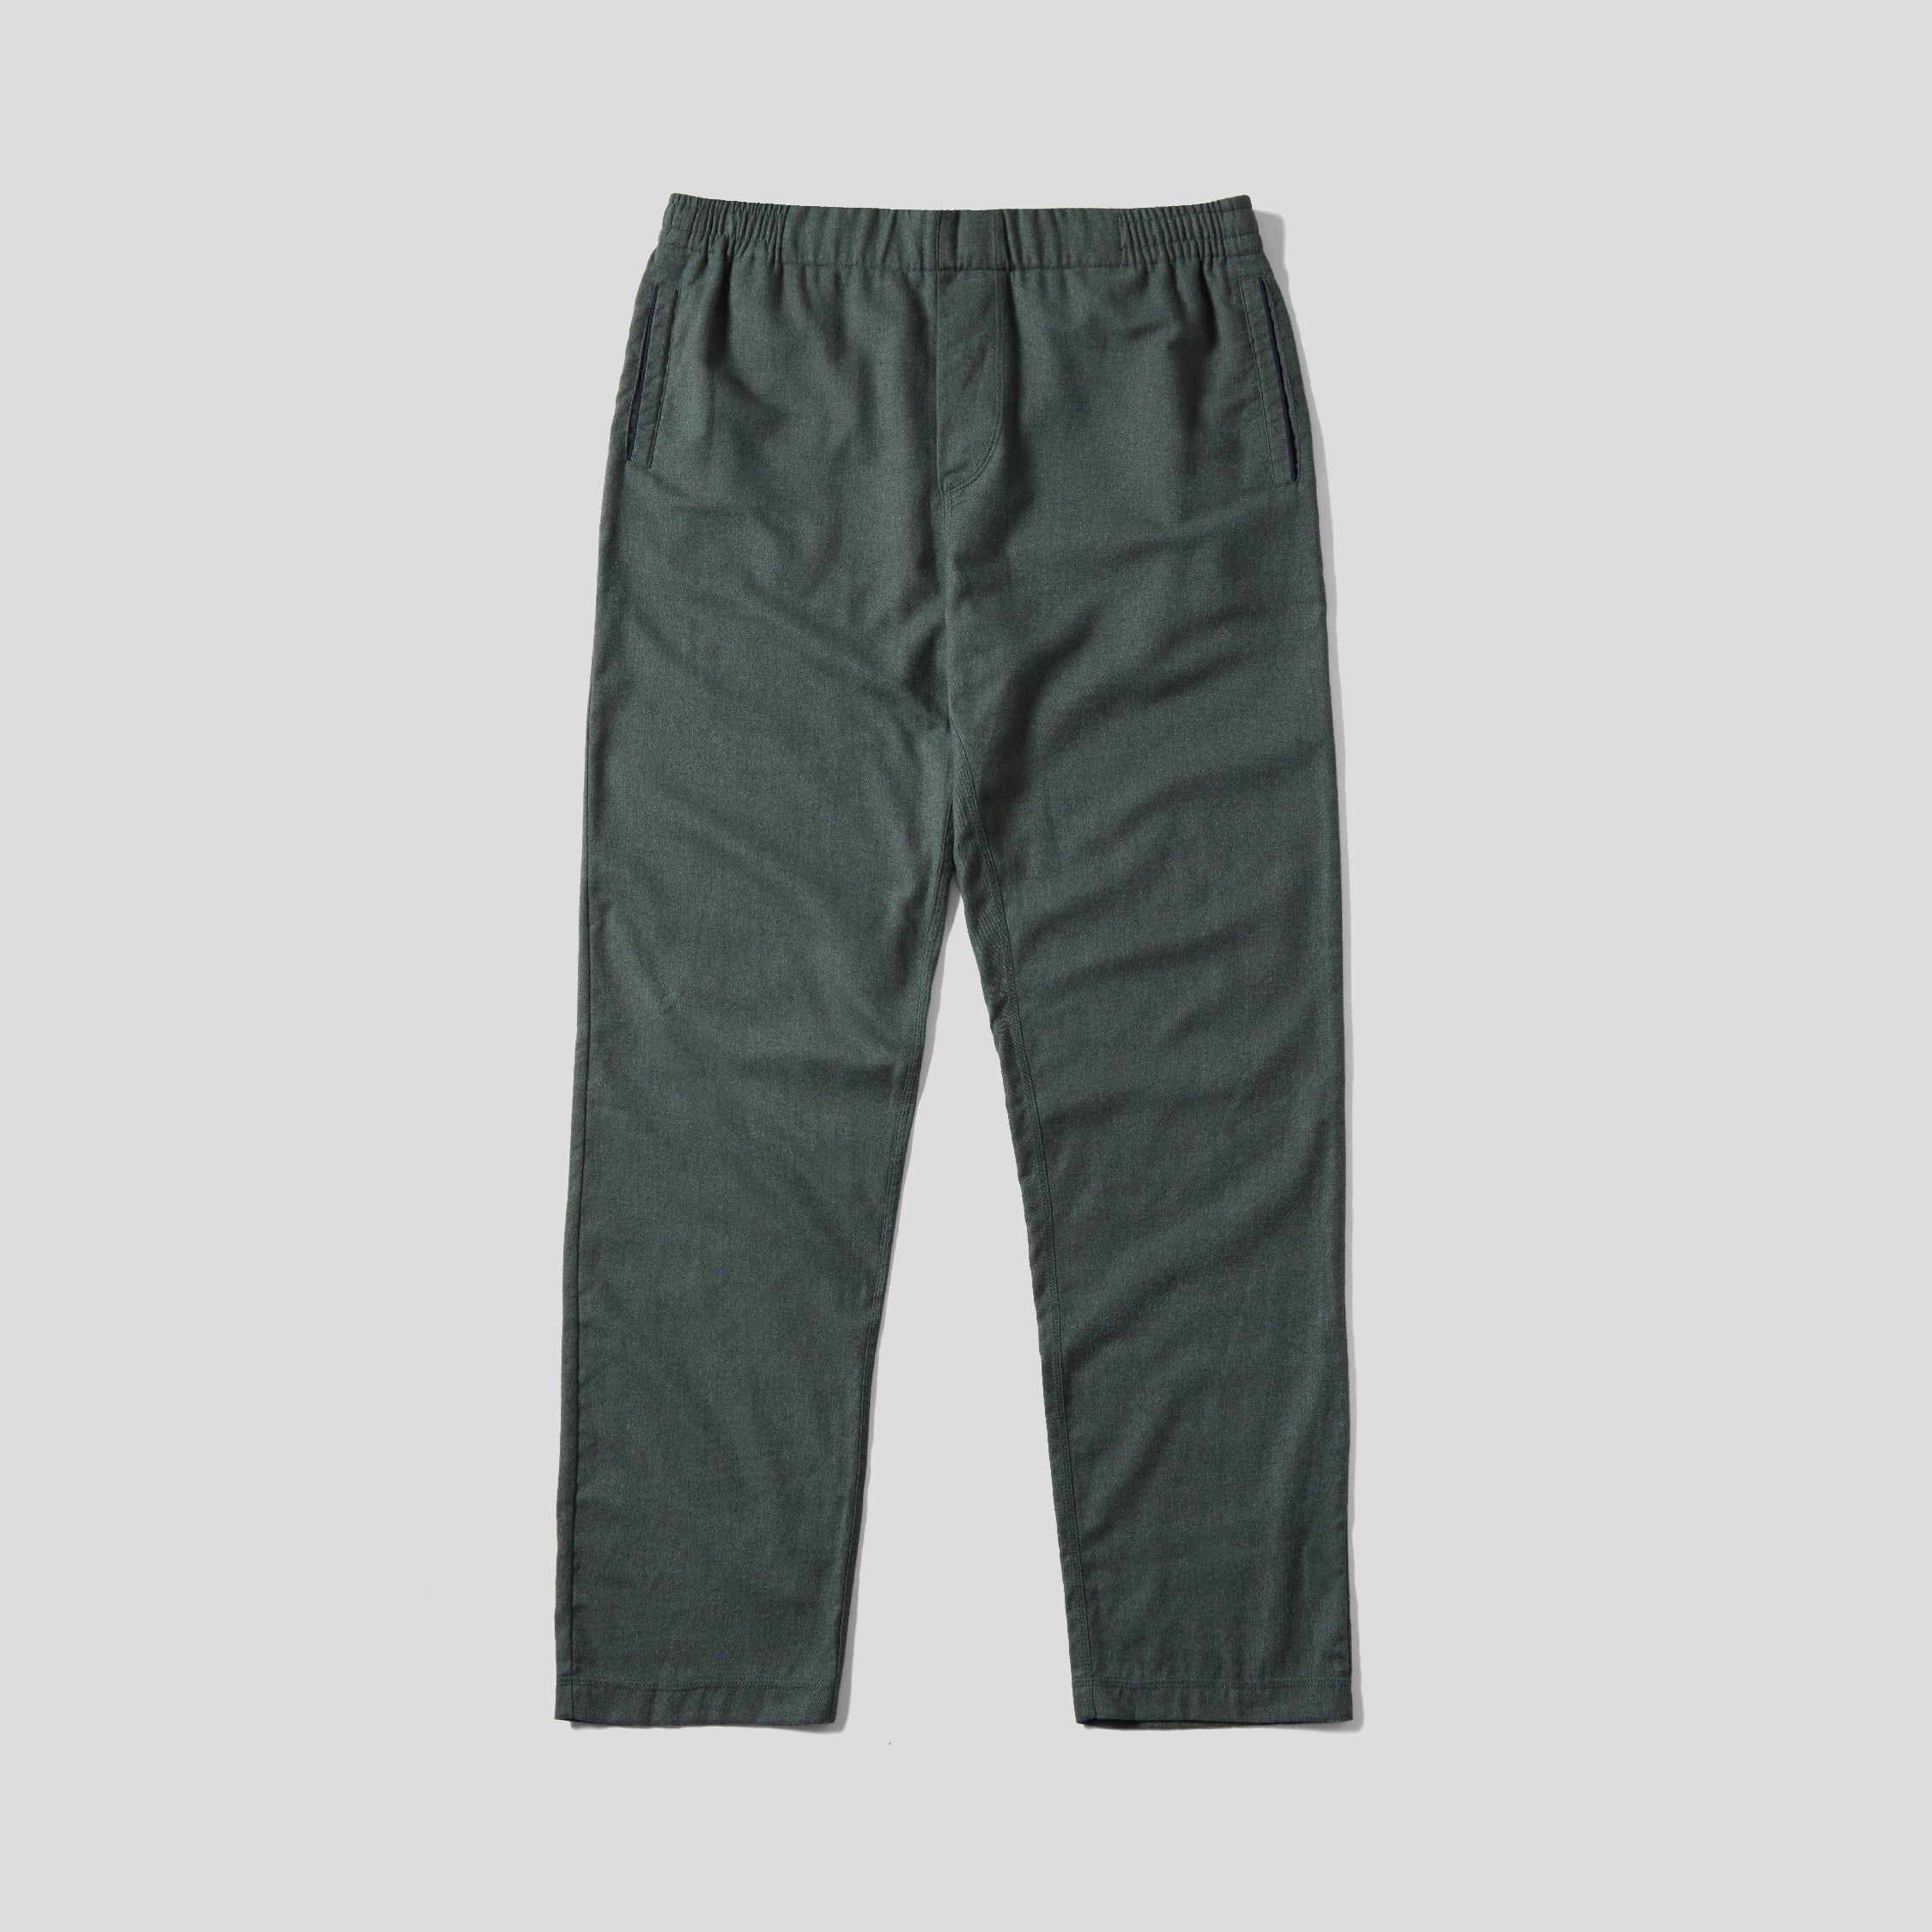 Pyjama Trouser - Green Cotton Flannel